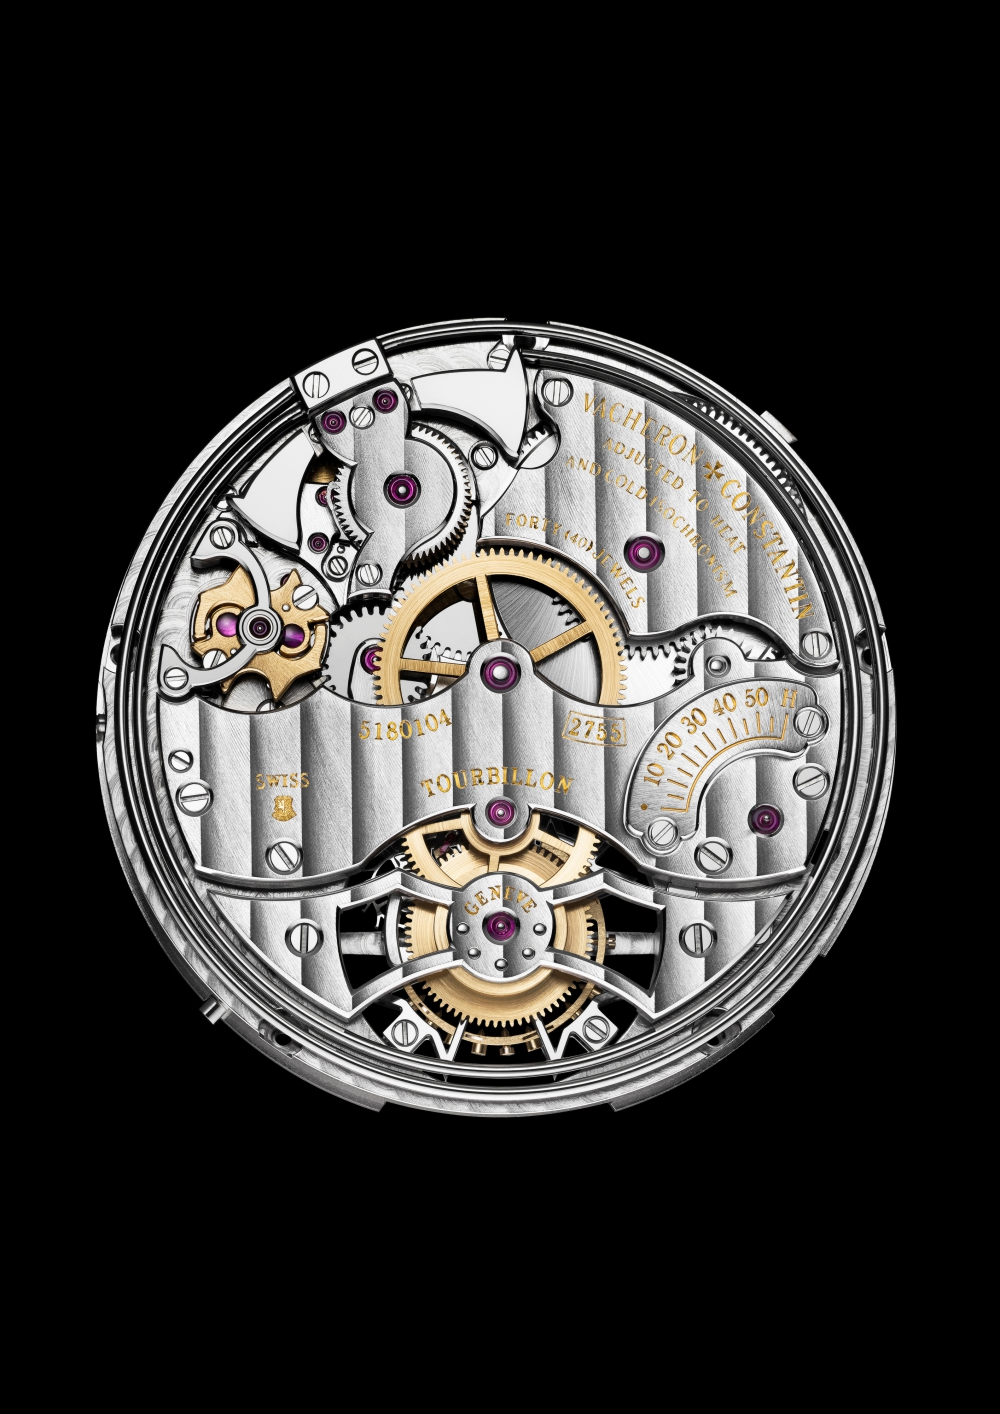 foto-4_cal2755-_vacheron_constantin_traditionnelle_-tourbillon_-repeticion-minutos_